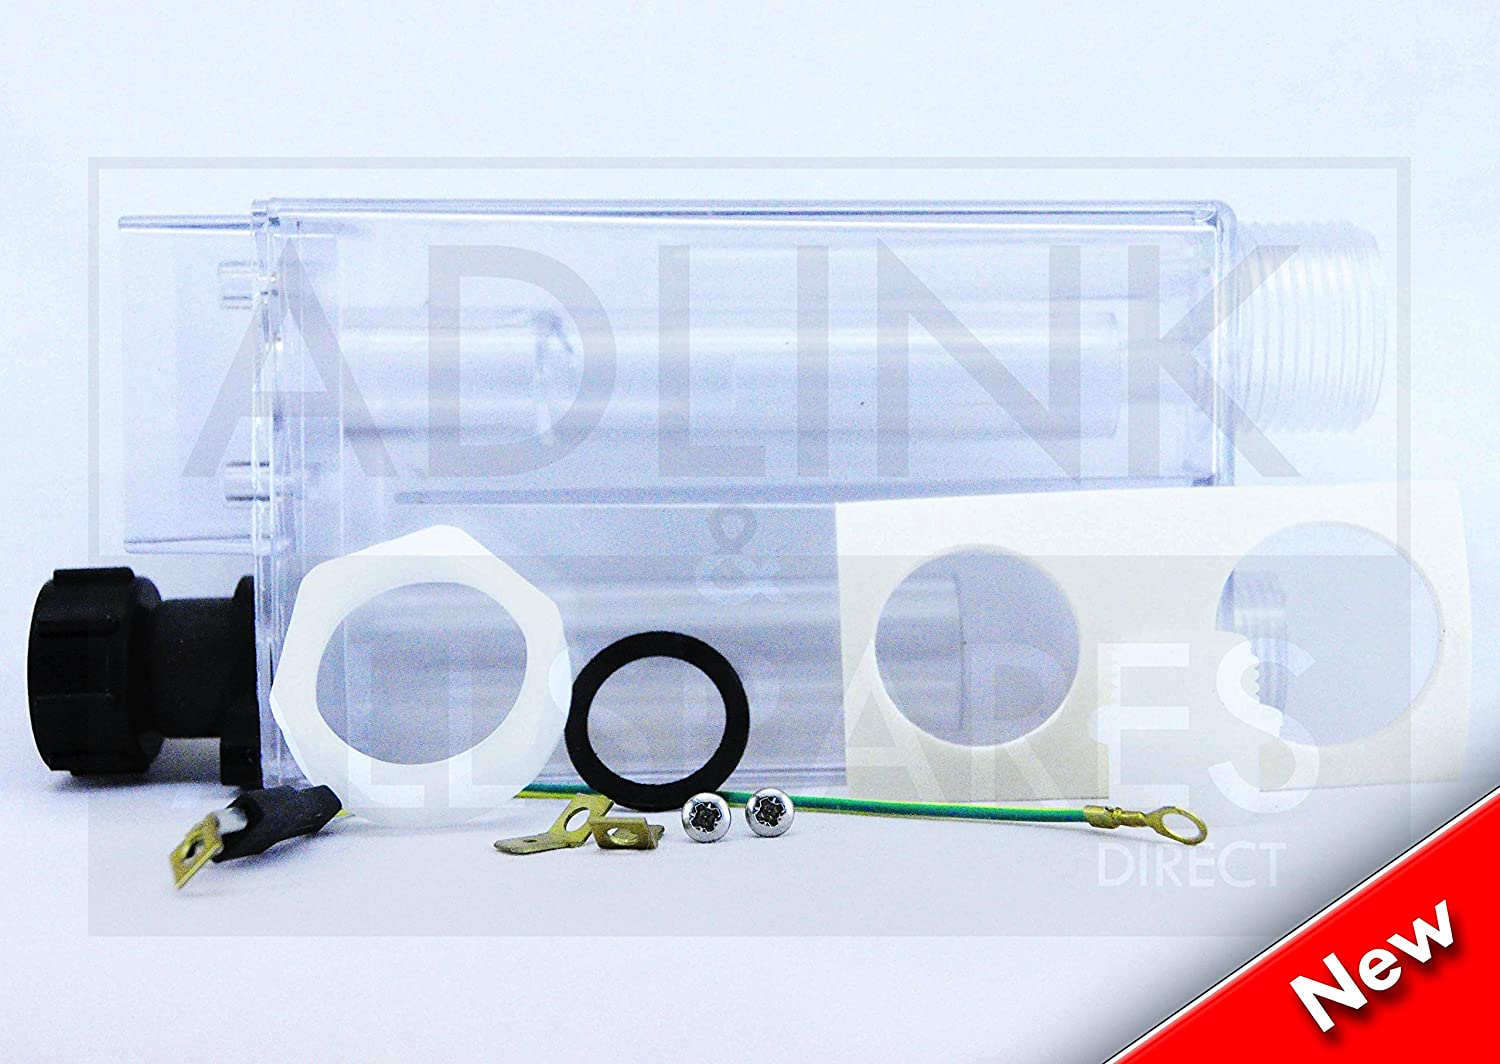 BAXI SOLO HE & HE A & HE IE 12 15 18 24 30 BOILER CONDENSATE TRAP KIT 5111714